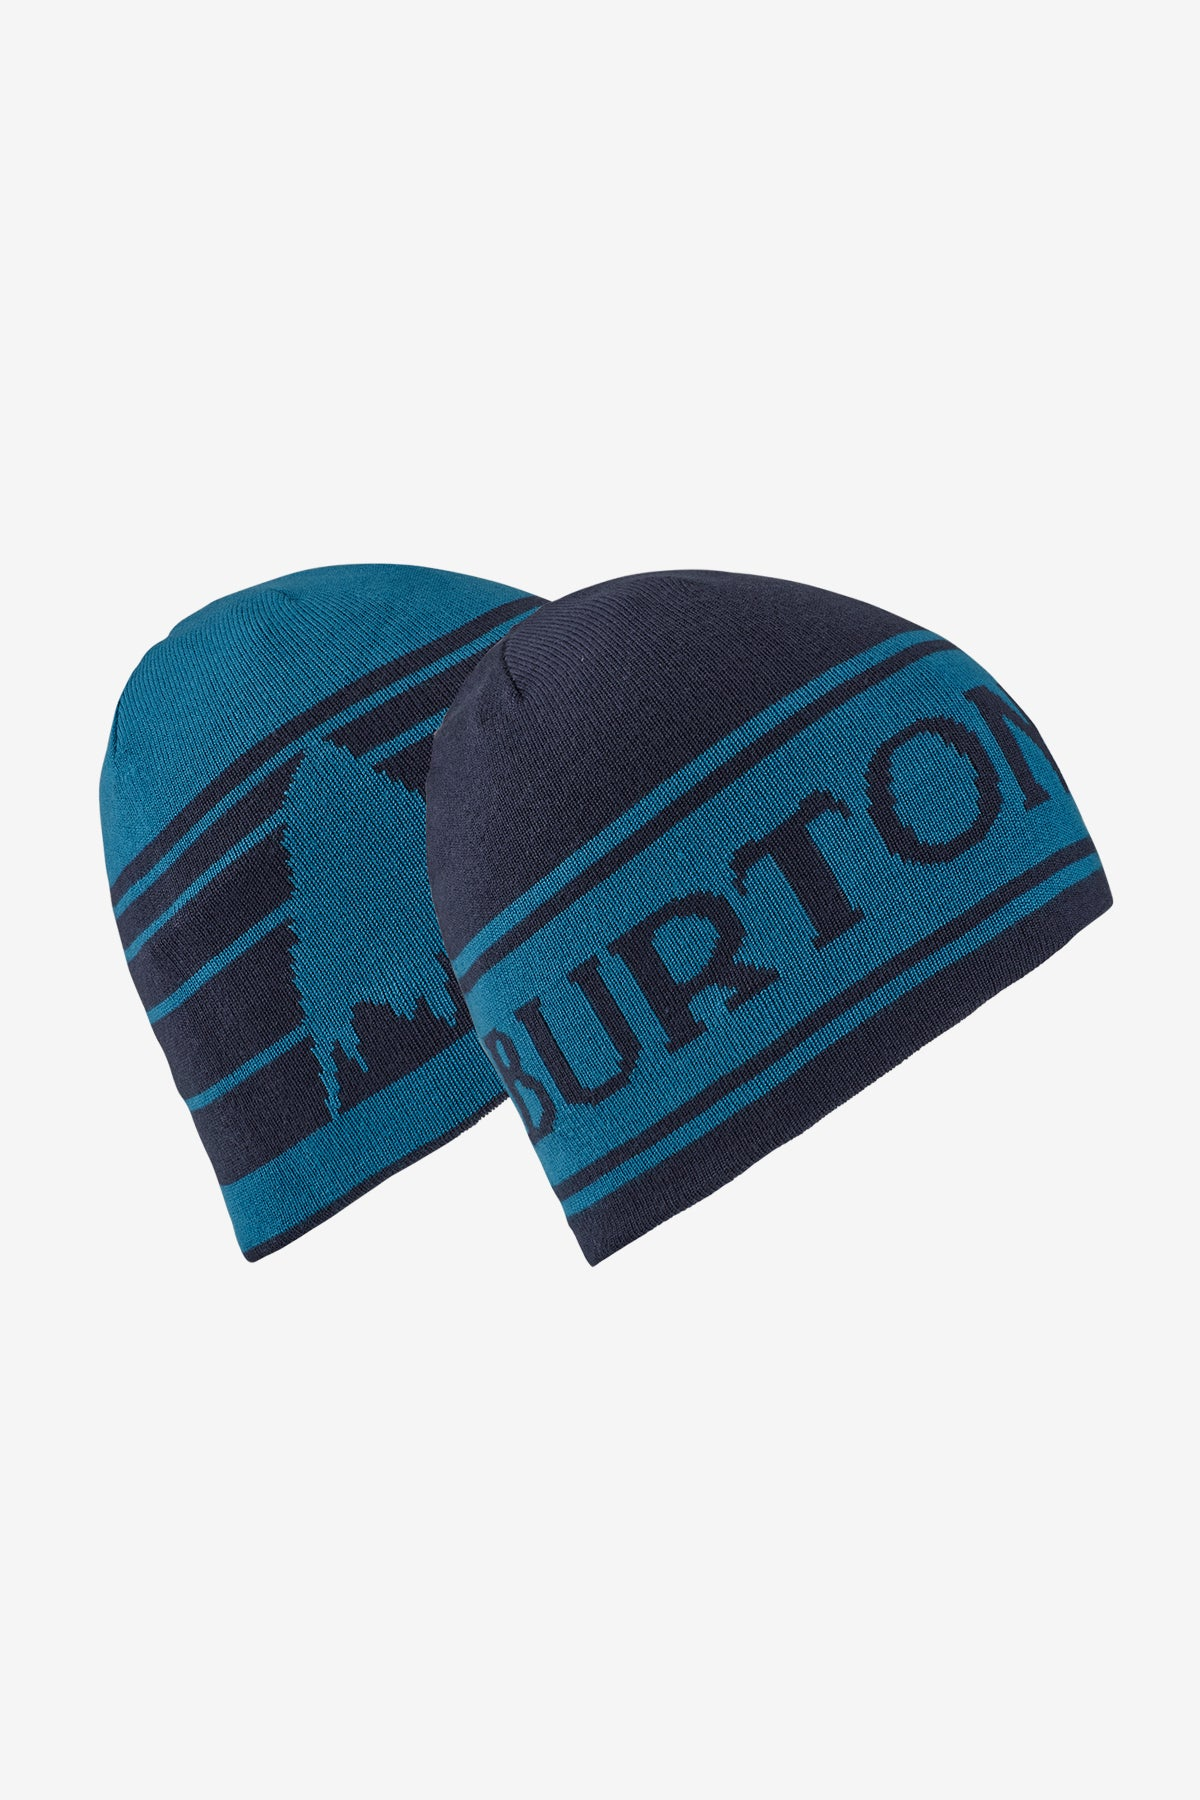 Burton Youth Billboard Beanie - Indigo